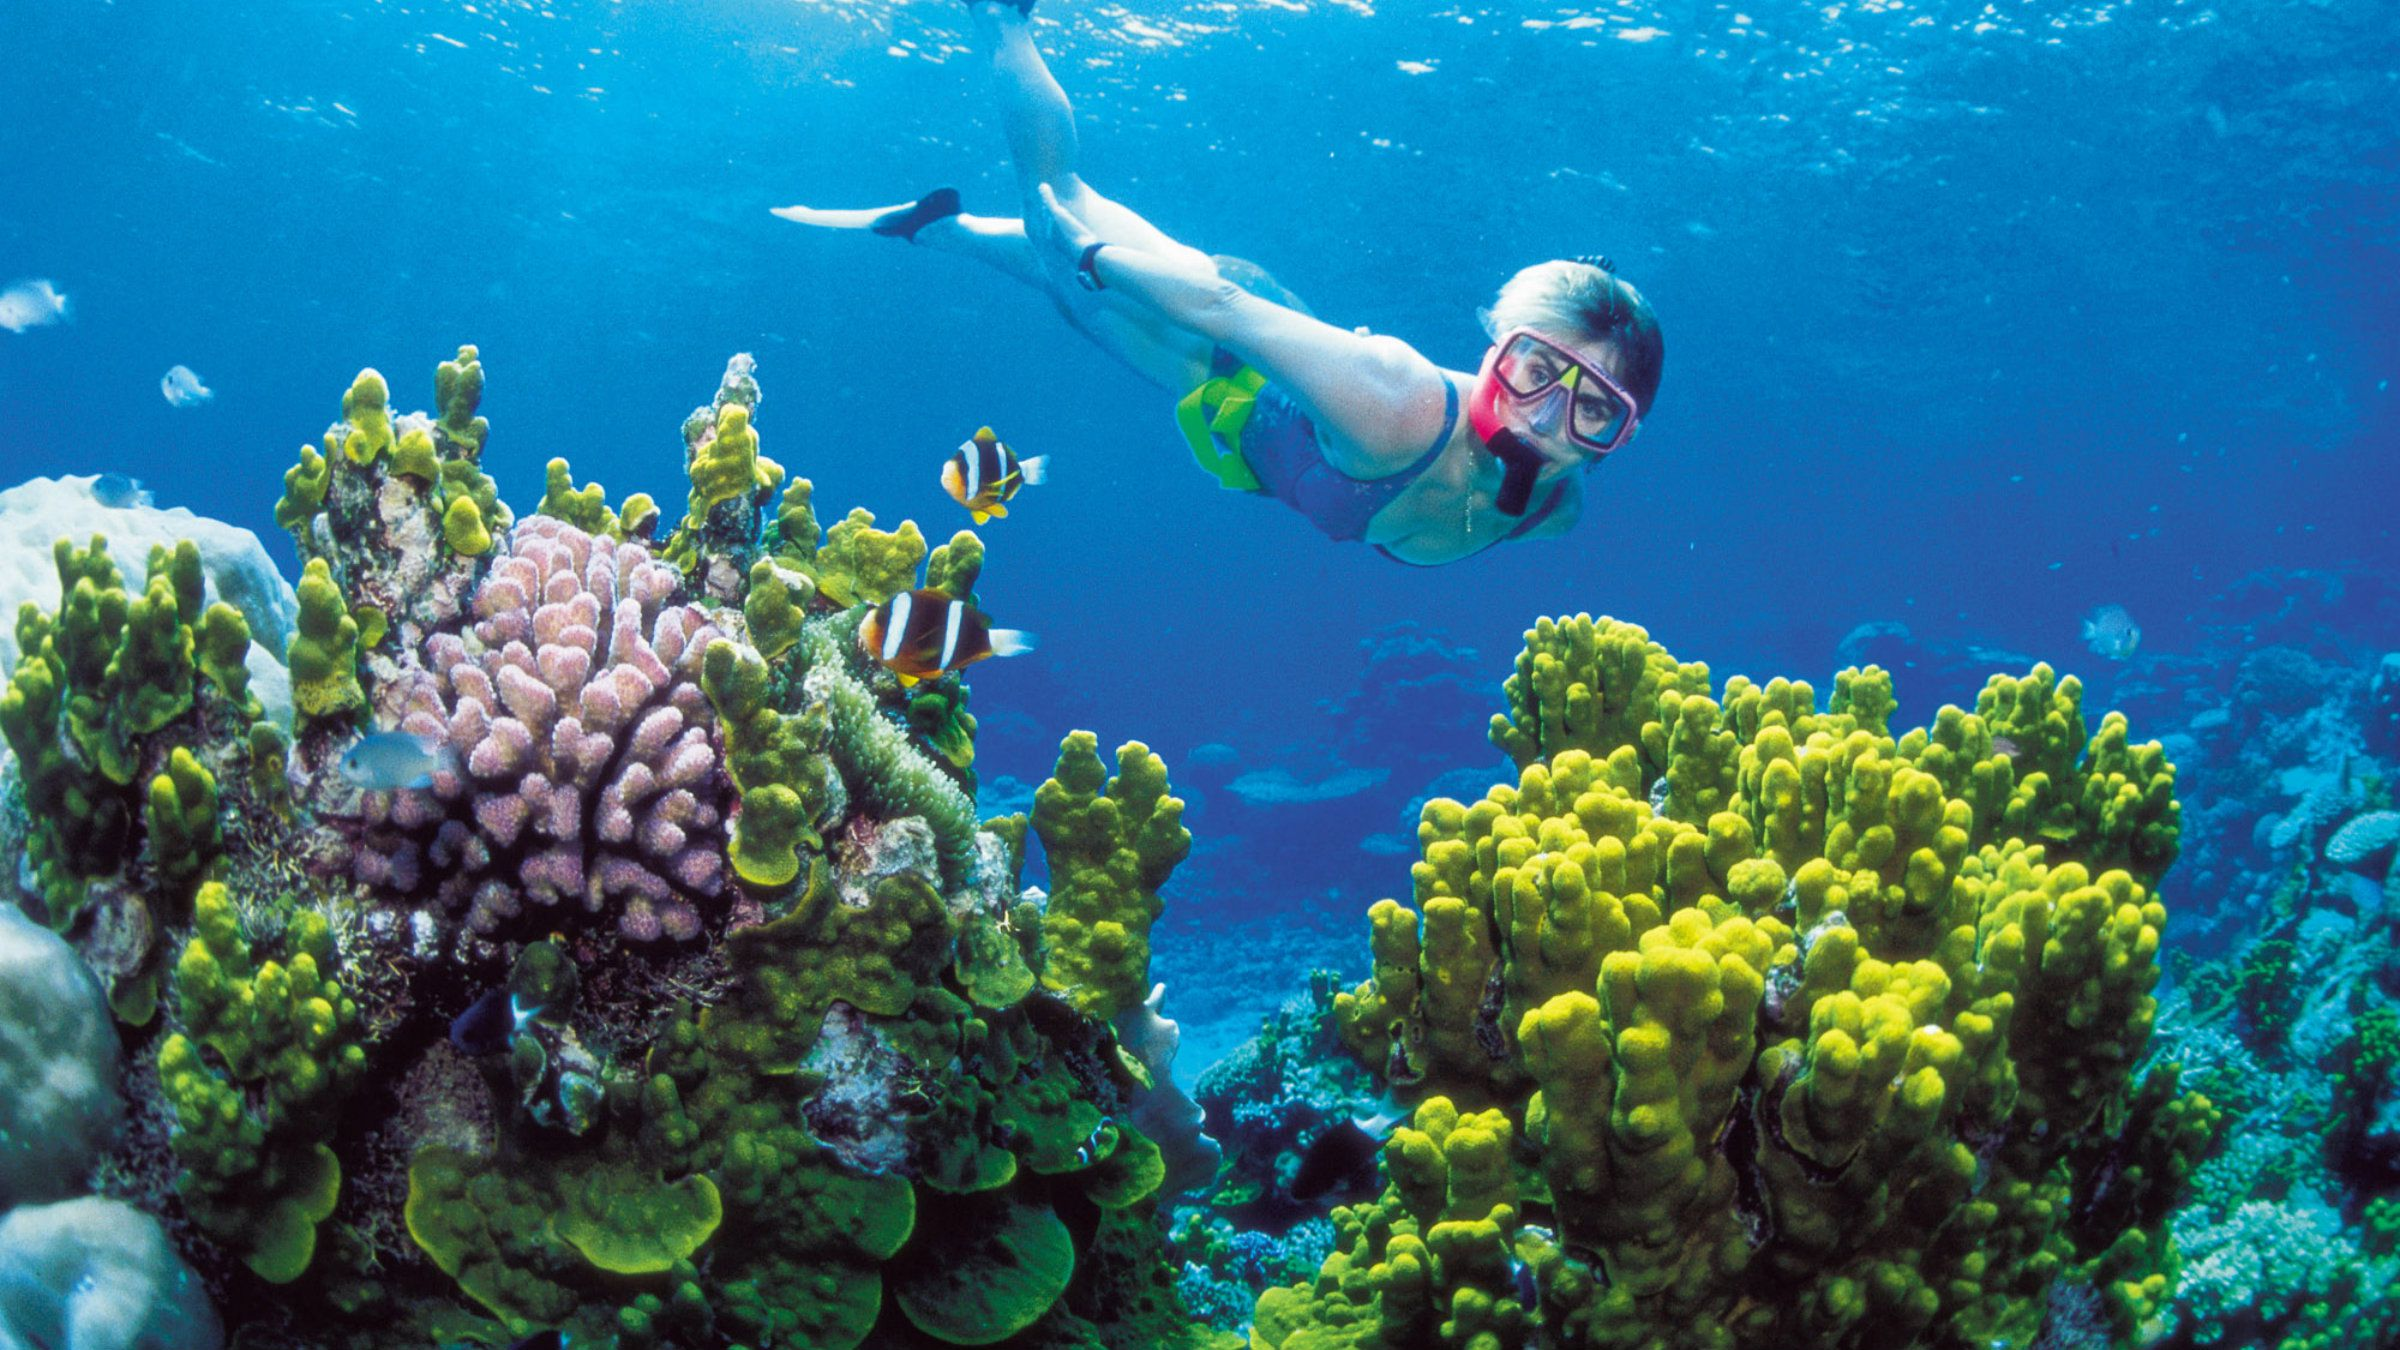 An unidentified woman snorkels on the Great Barrier Reef off Australia's Queensland state.